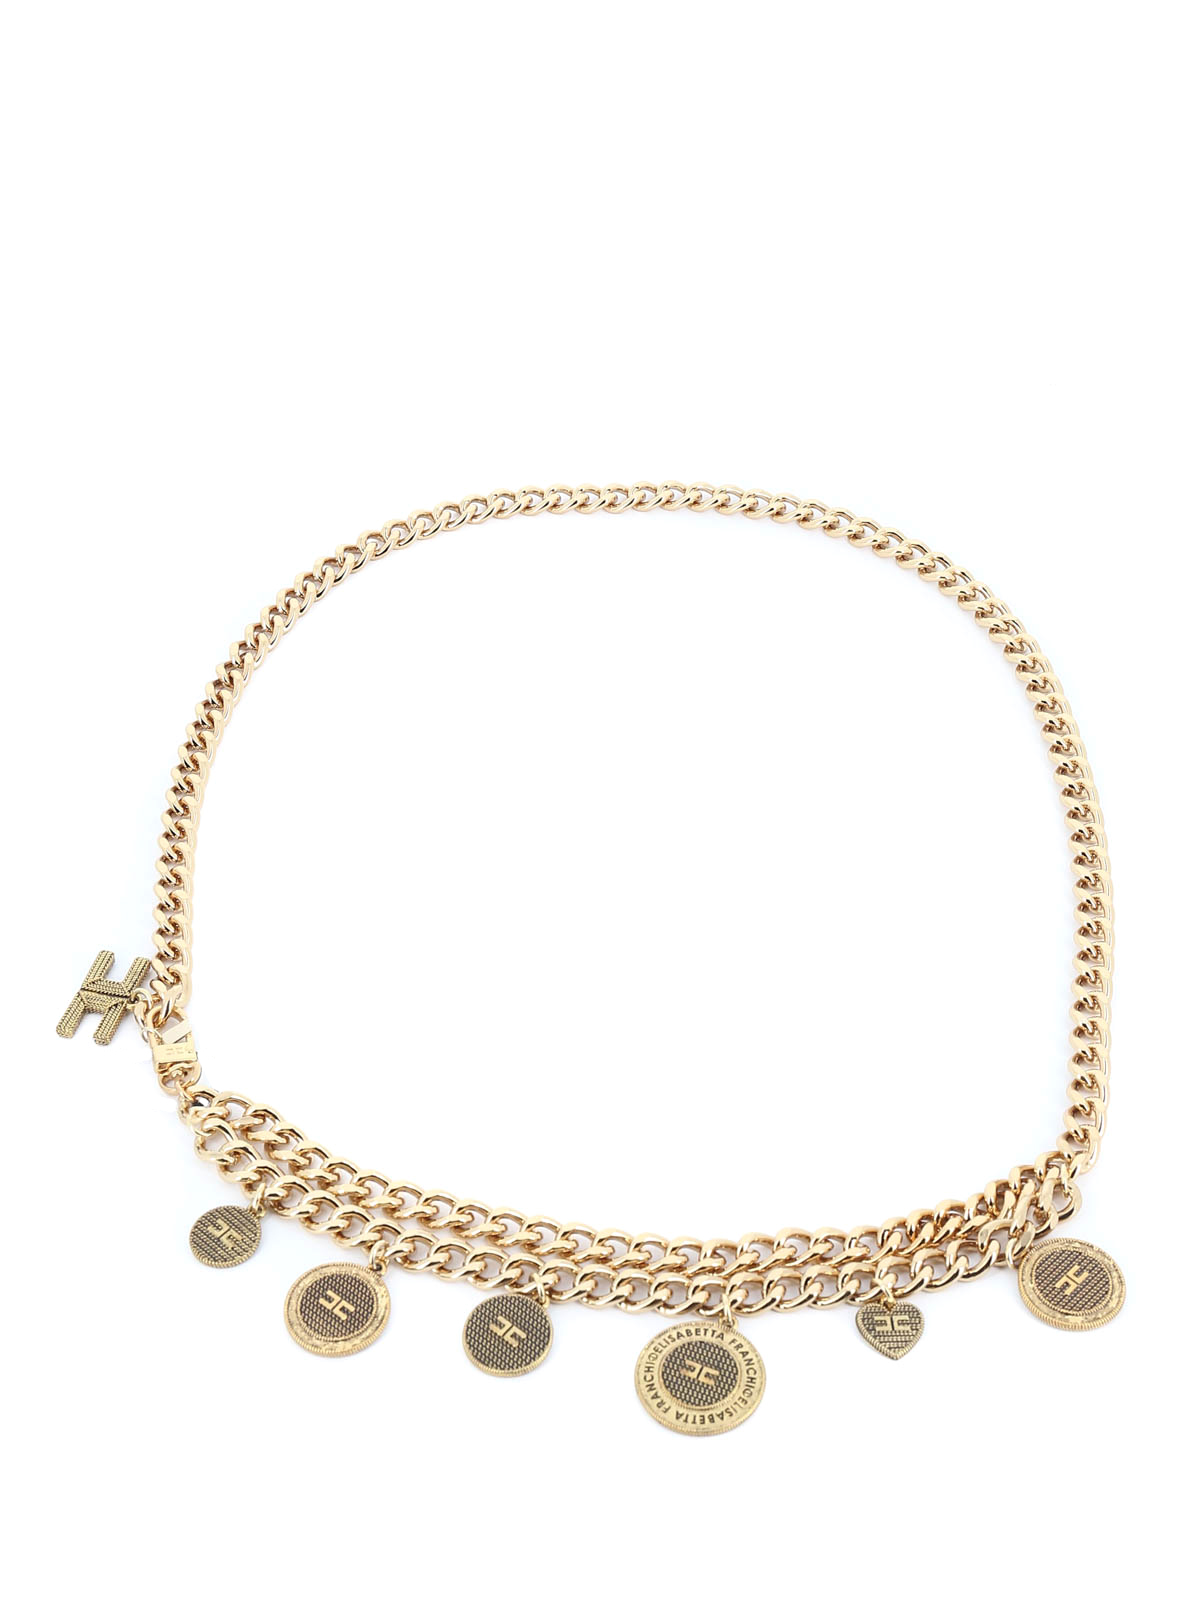 Elisabetta Franchi CHAIN BELT WITH CHARMS